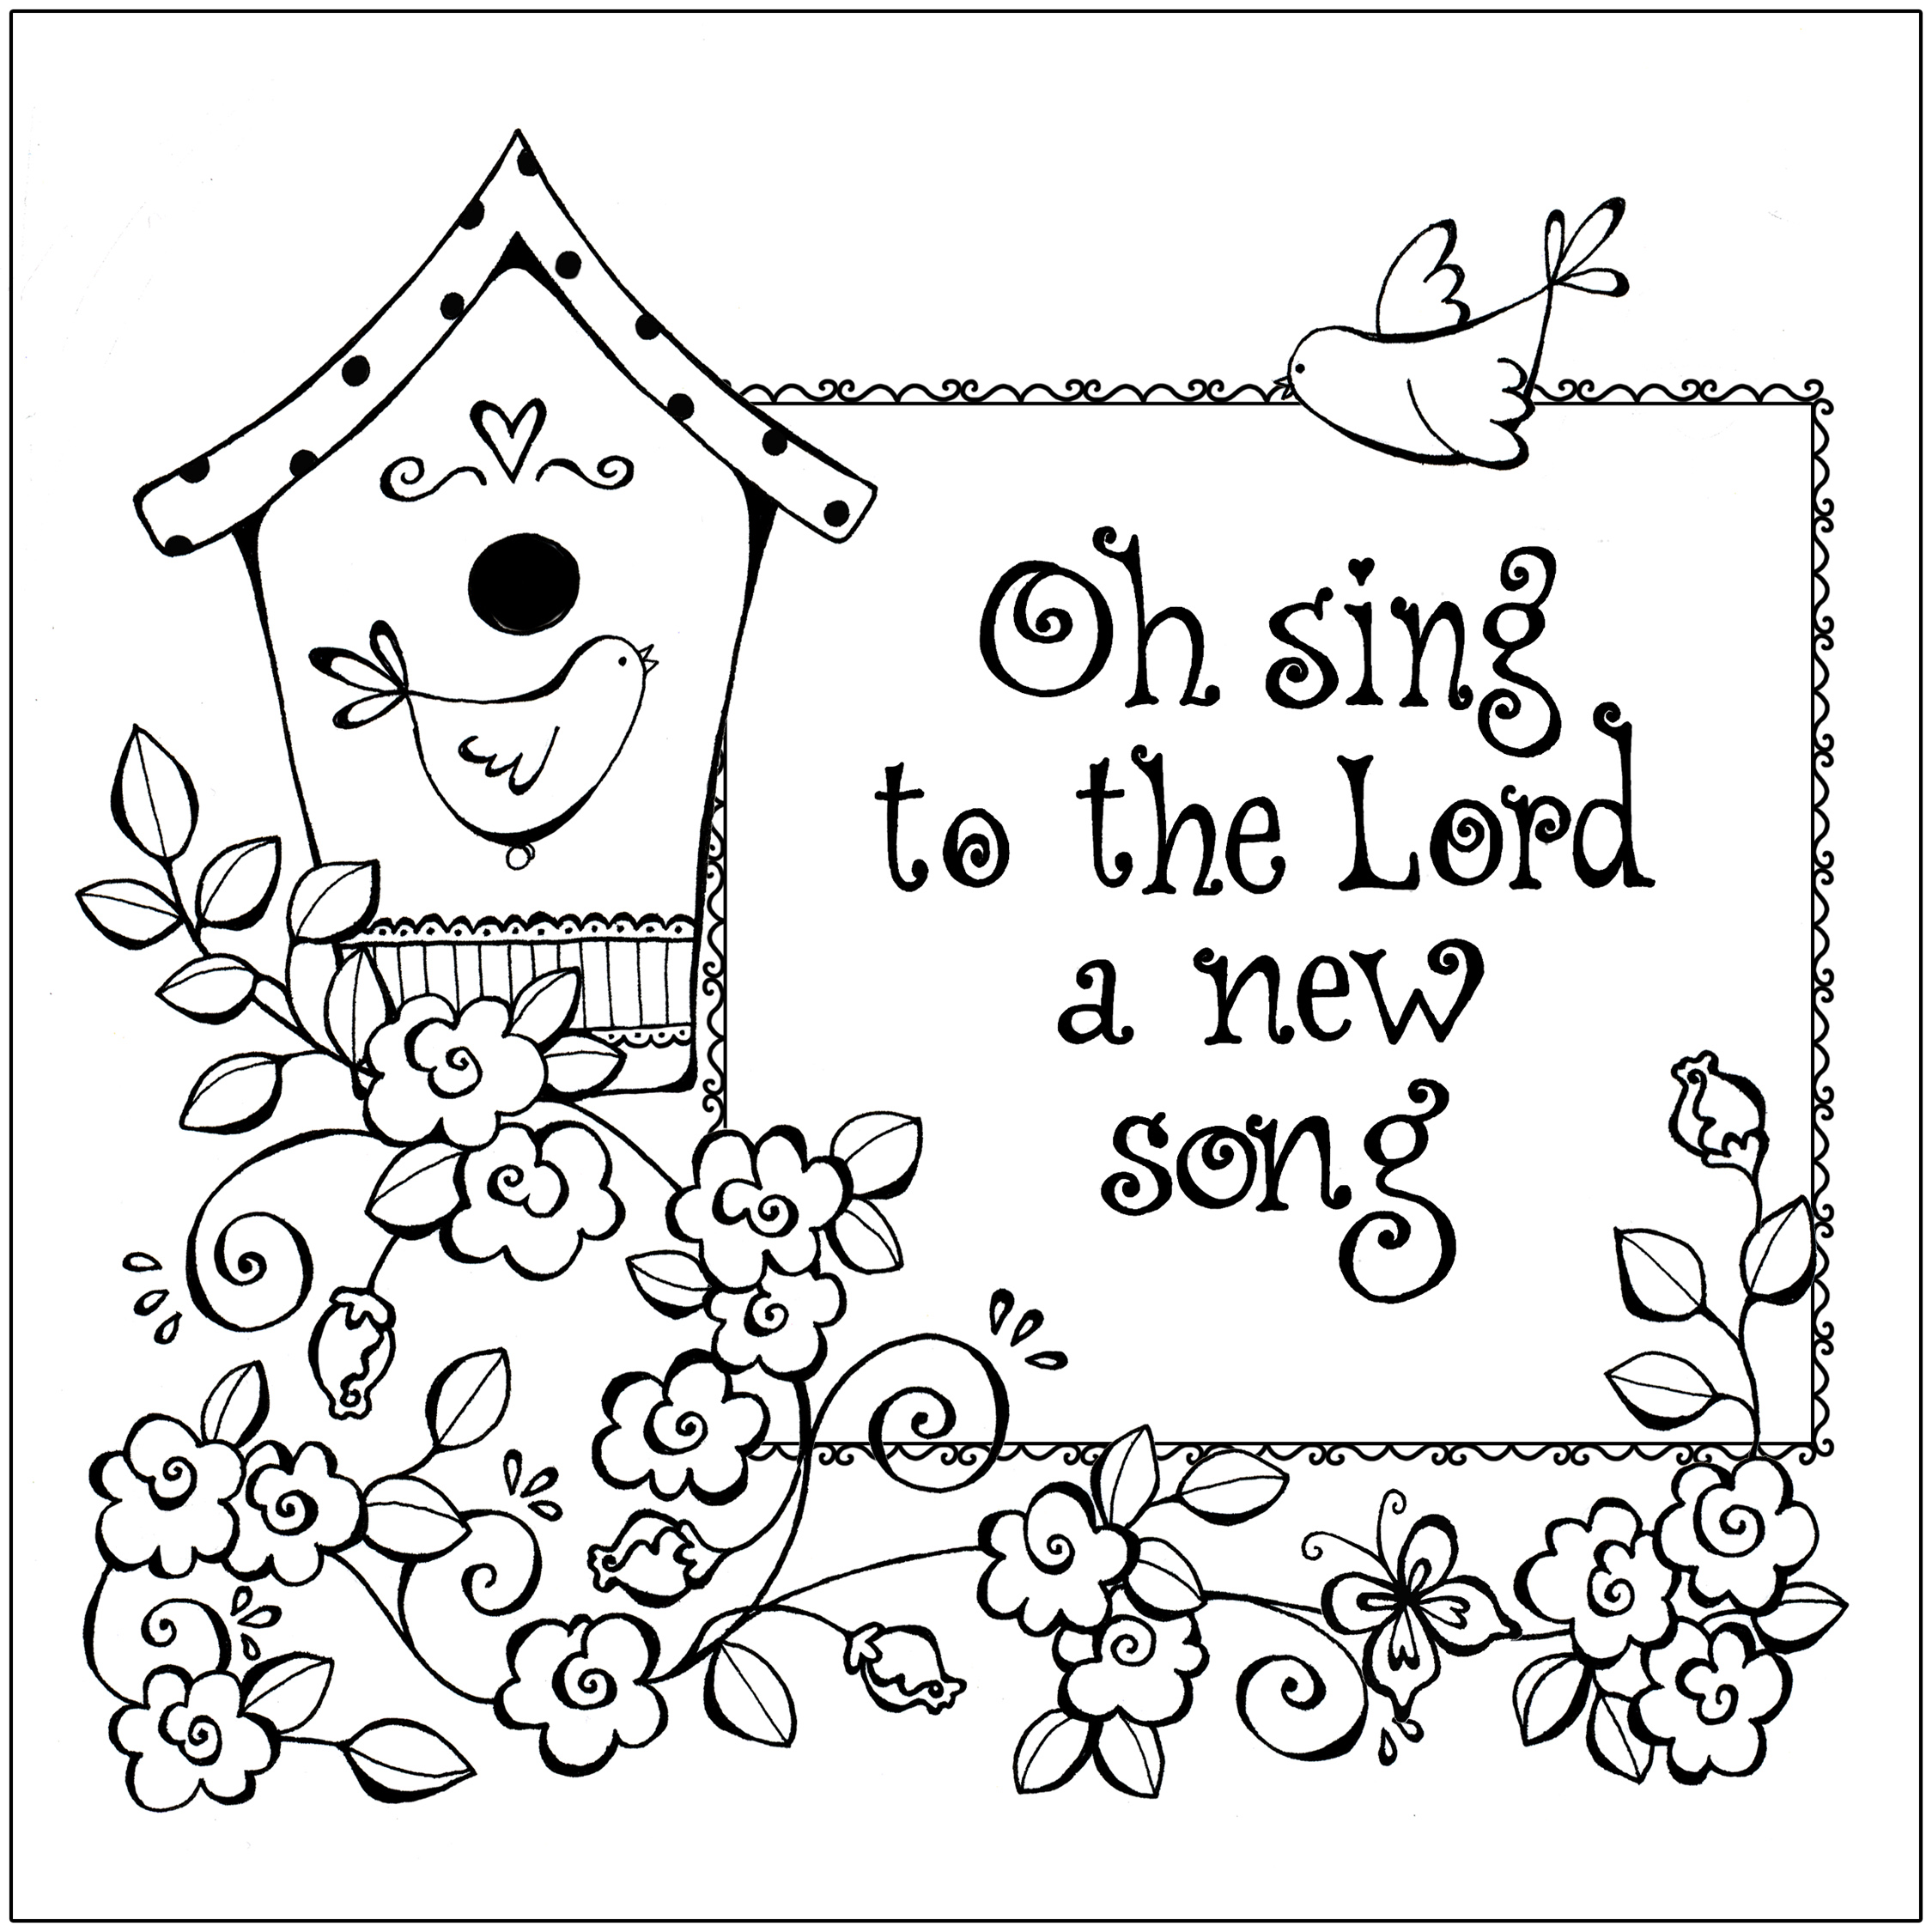 Christian Coloring Pages Amazing Free Printable Christian Coloring Pages For Kids  Best Coloring .